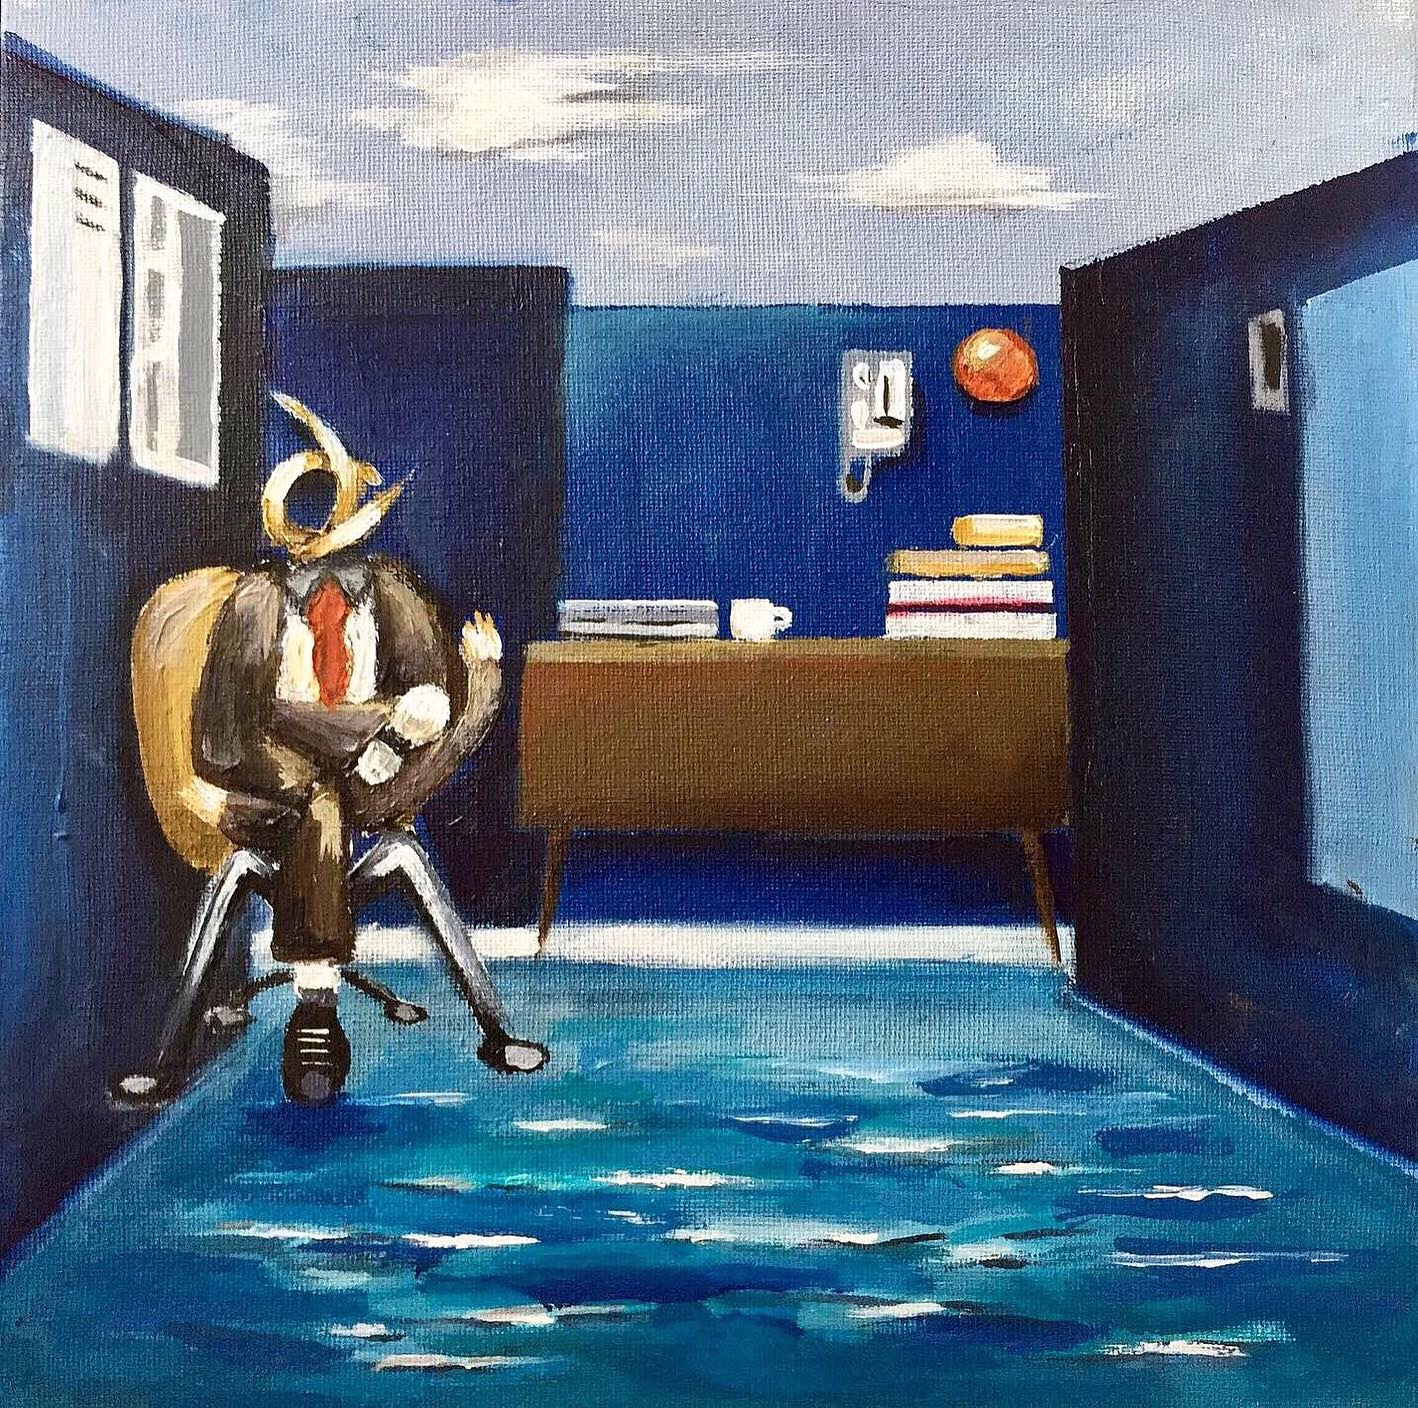 ' 9-5 ' acrylic painting on 12 x 12 inch canvas. Depicting a man stuck in his miserable 9-5 office job pinning his hopes on that all inclusive beach holiday once a year.